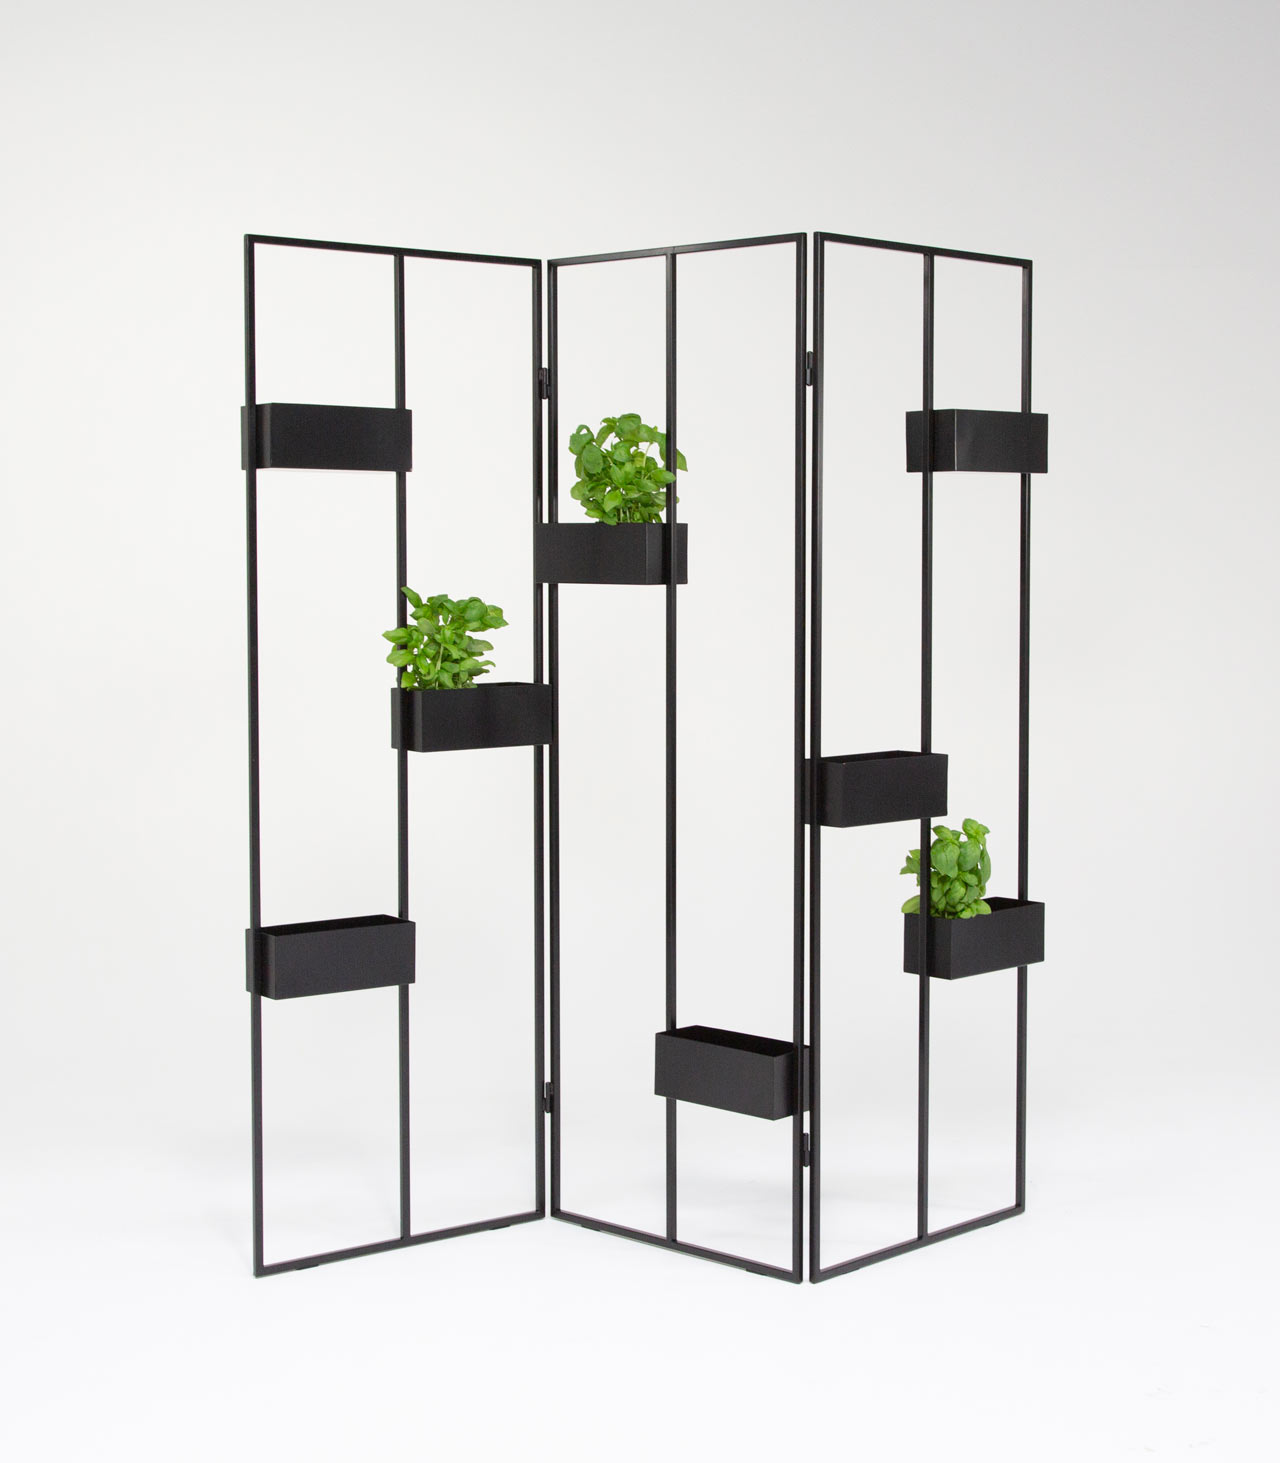 Hanna Särökaari Designs the Adjustable Verso Vertical Plant Stand